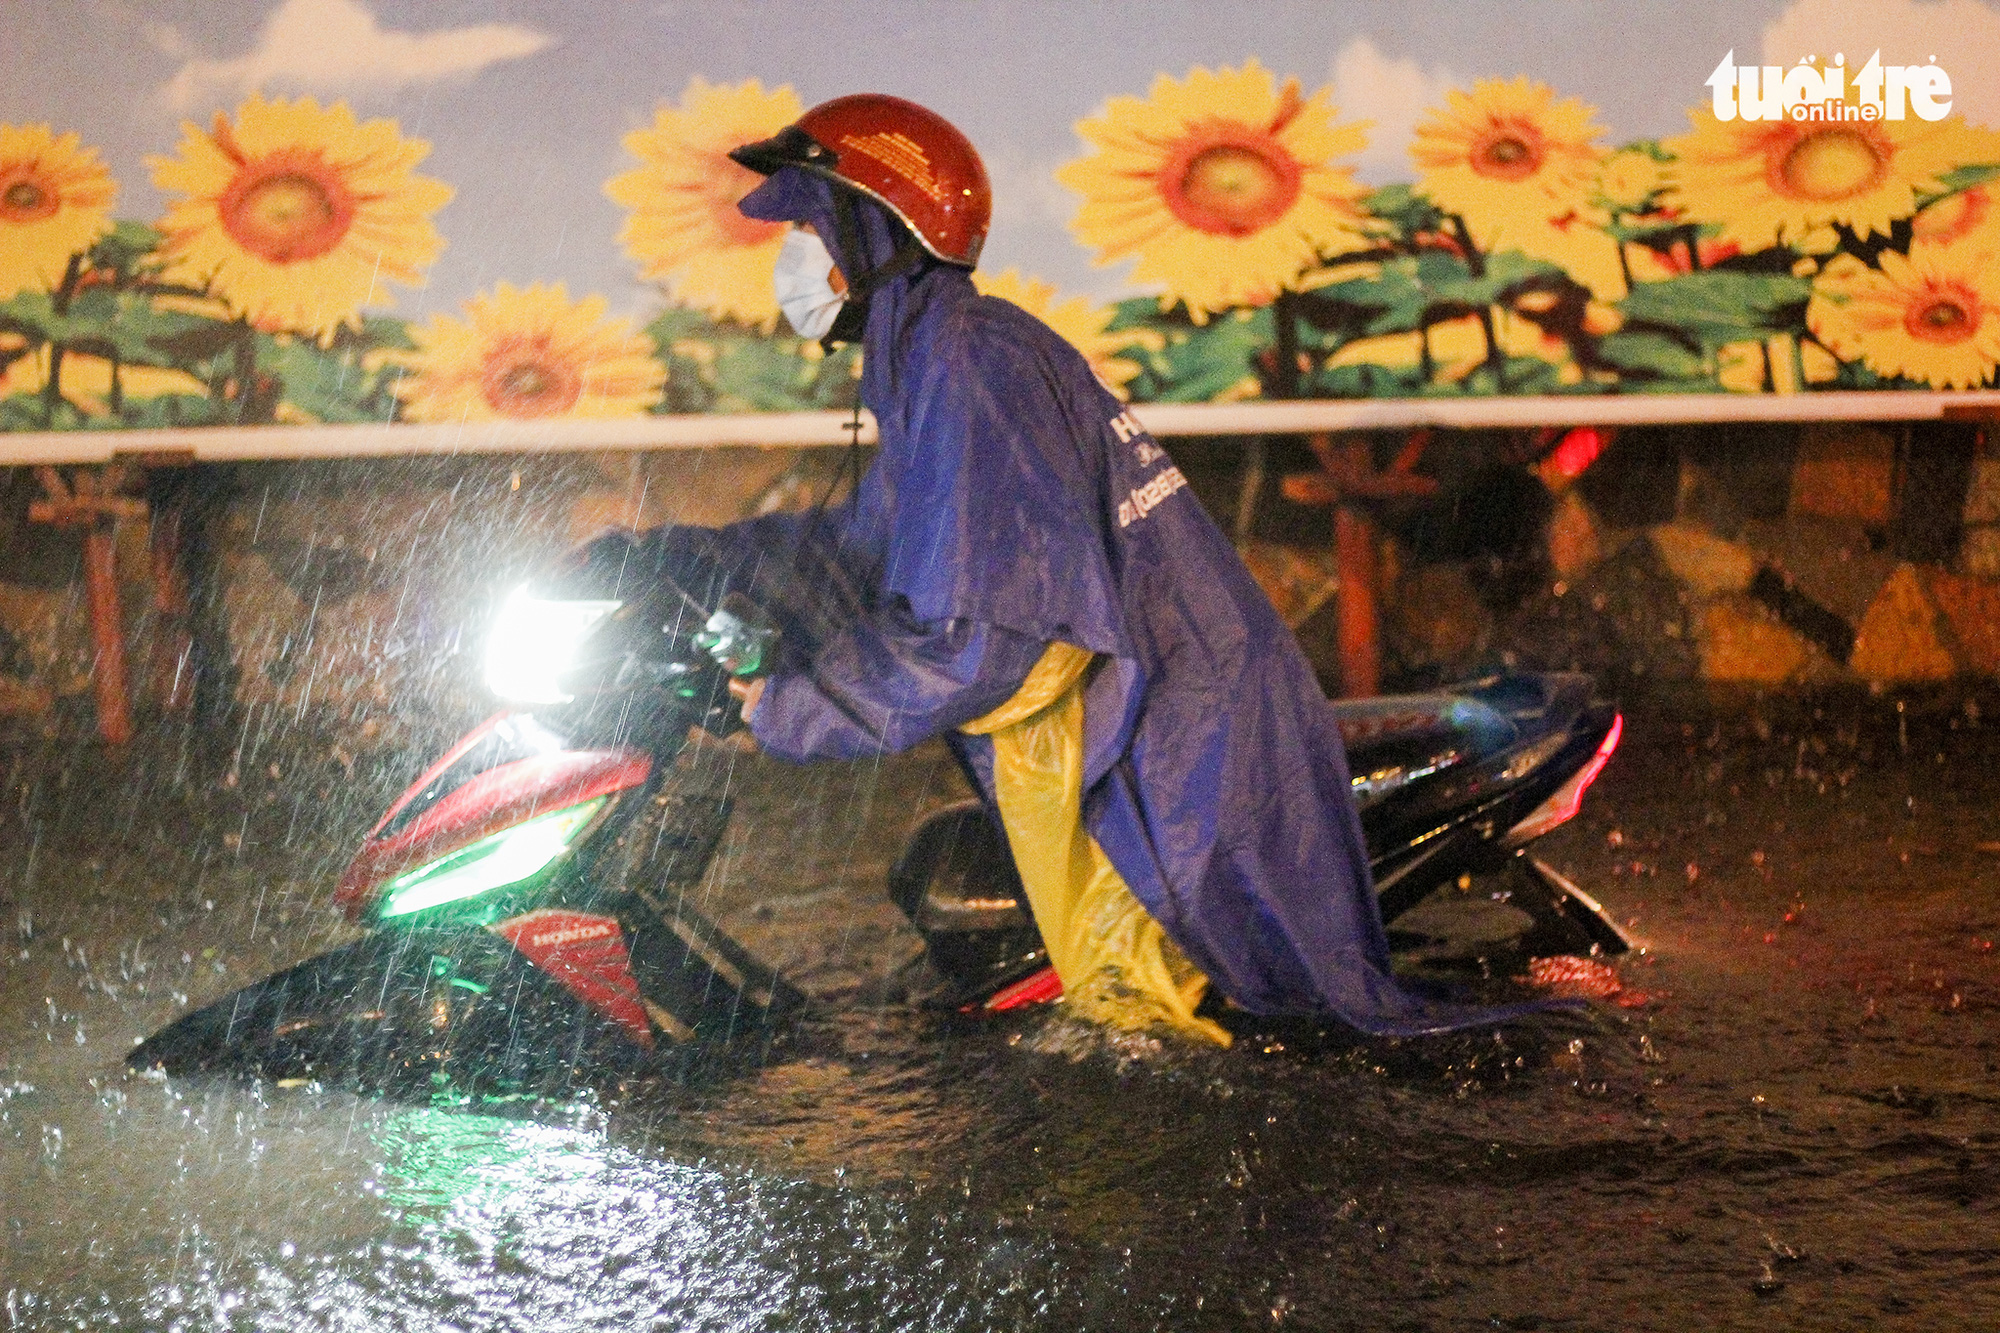 A resident pushes a motorcycle in knee-deep water, Ho Chi Minh City, August 6, 2020. Photo: Chau Tuan / Tuoi Tre